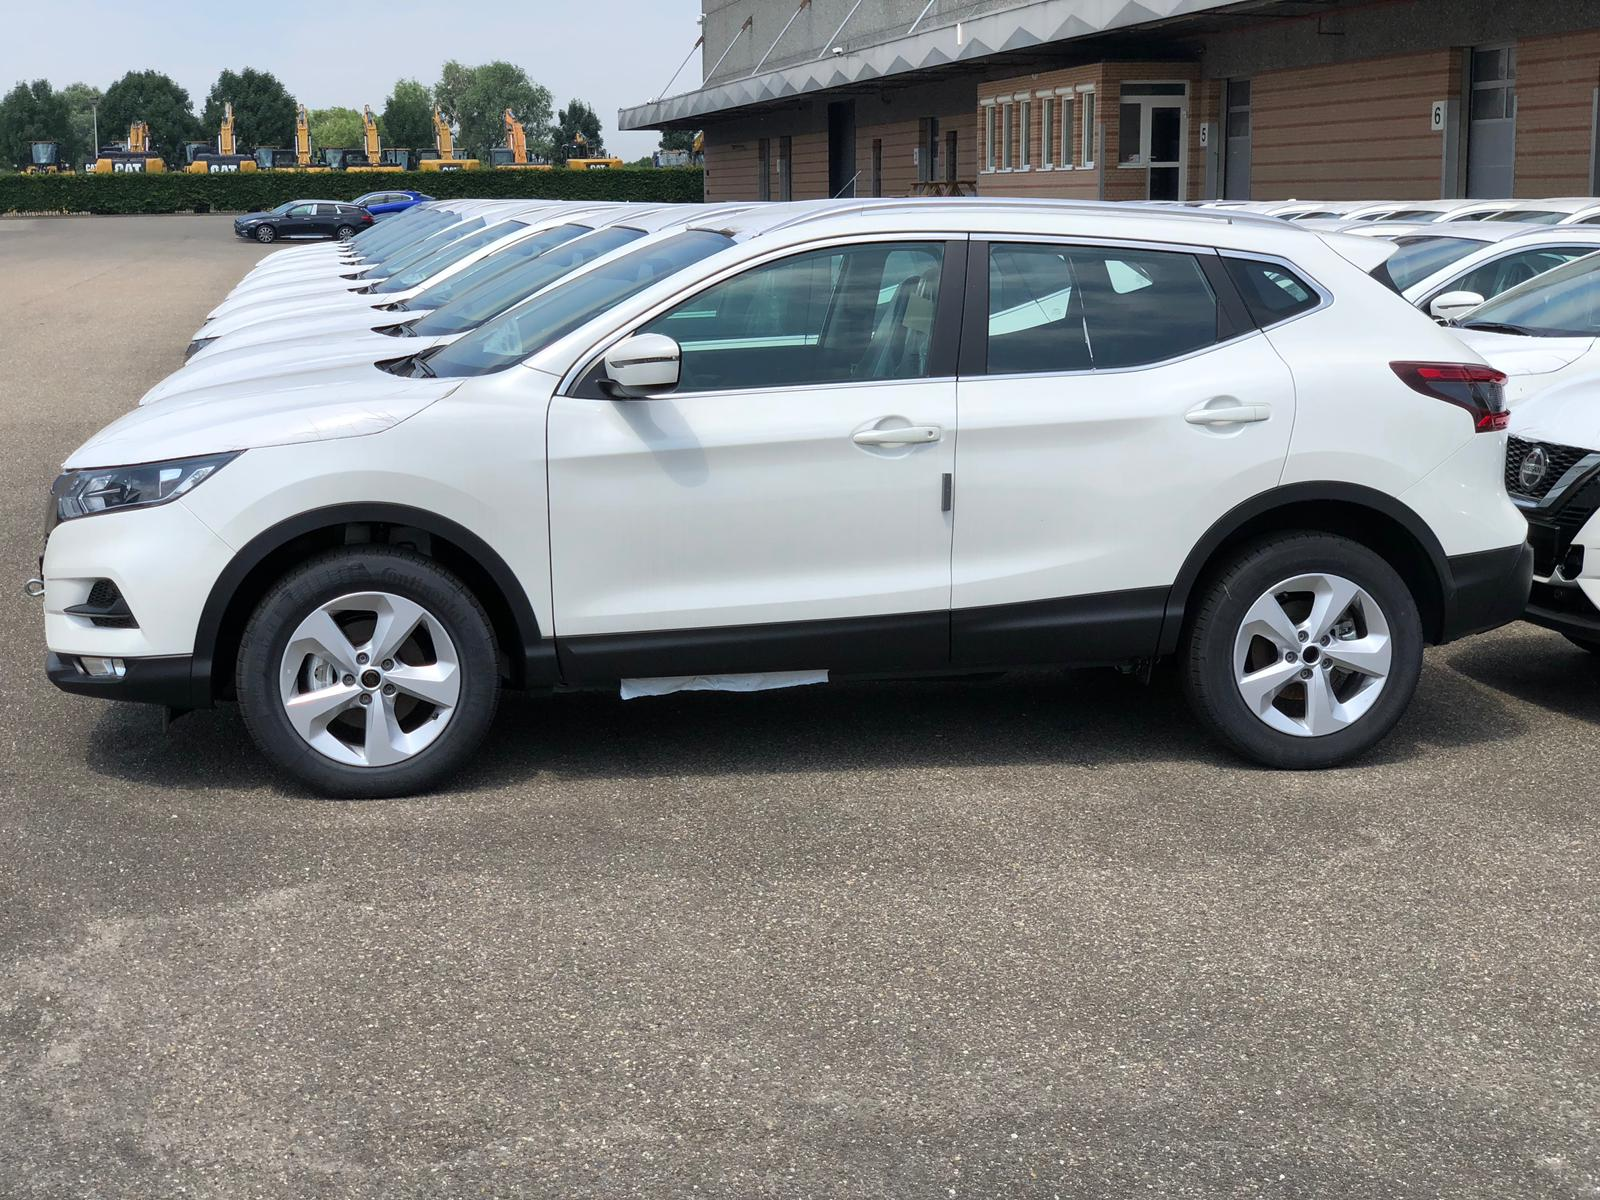 33625 - New 2019 Nissan Qashqai Accenta 1.6 DCI Diesel 2WD Automatic Europe